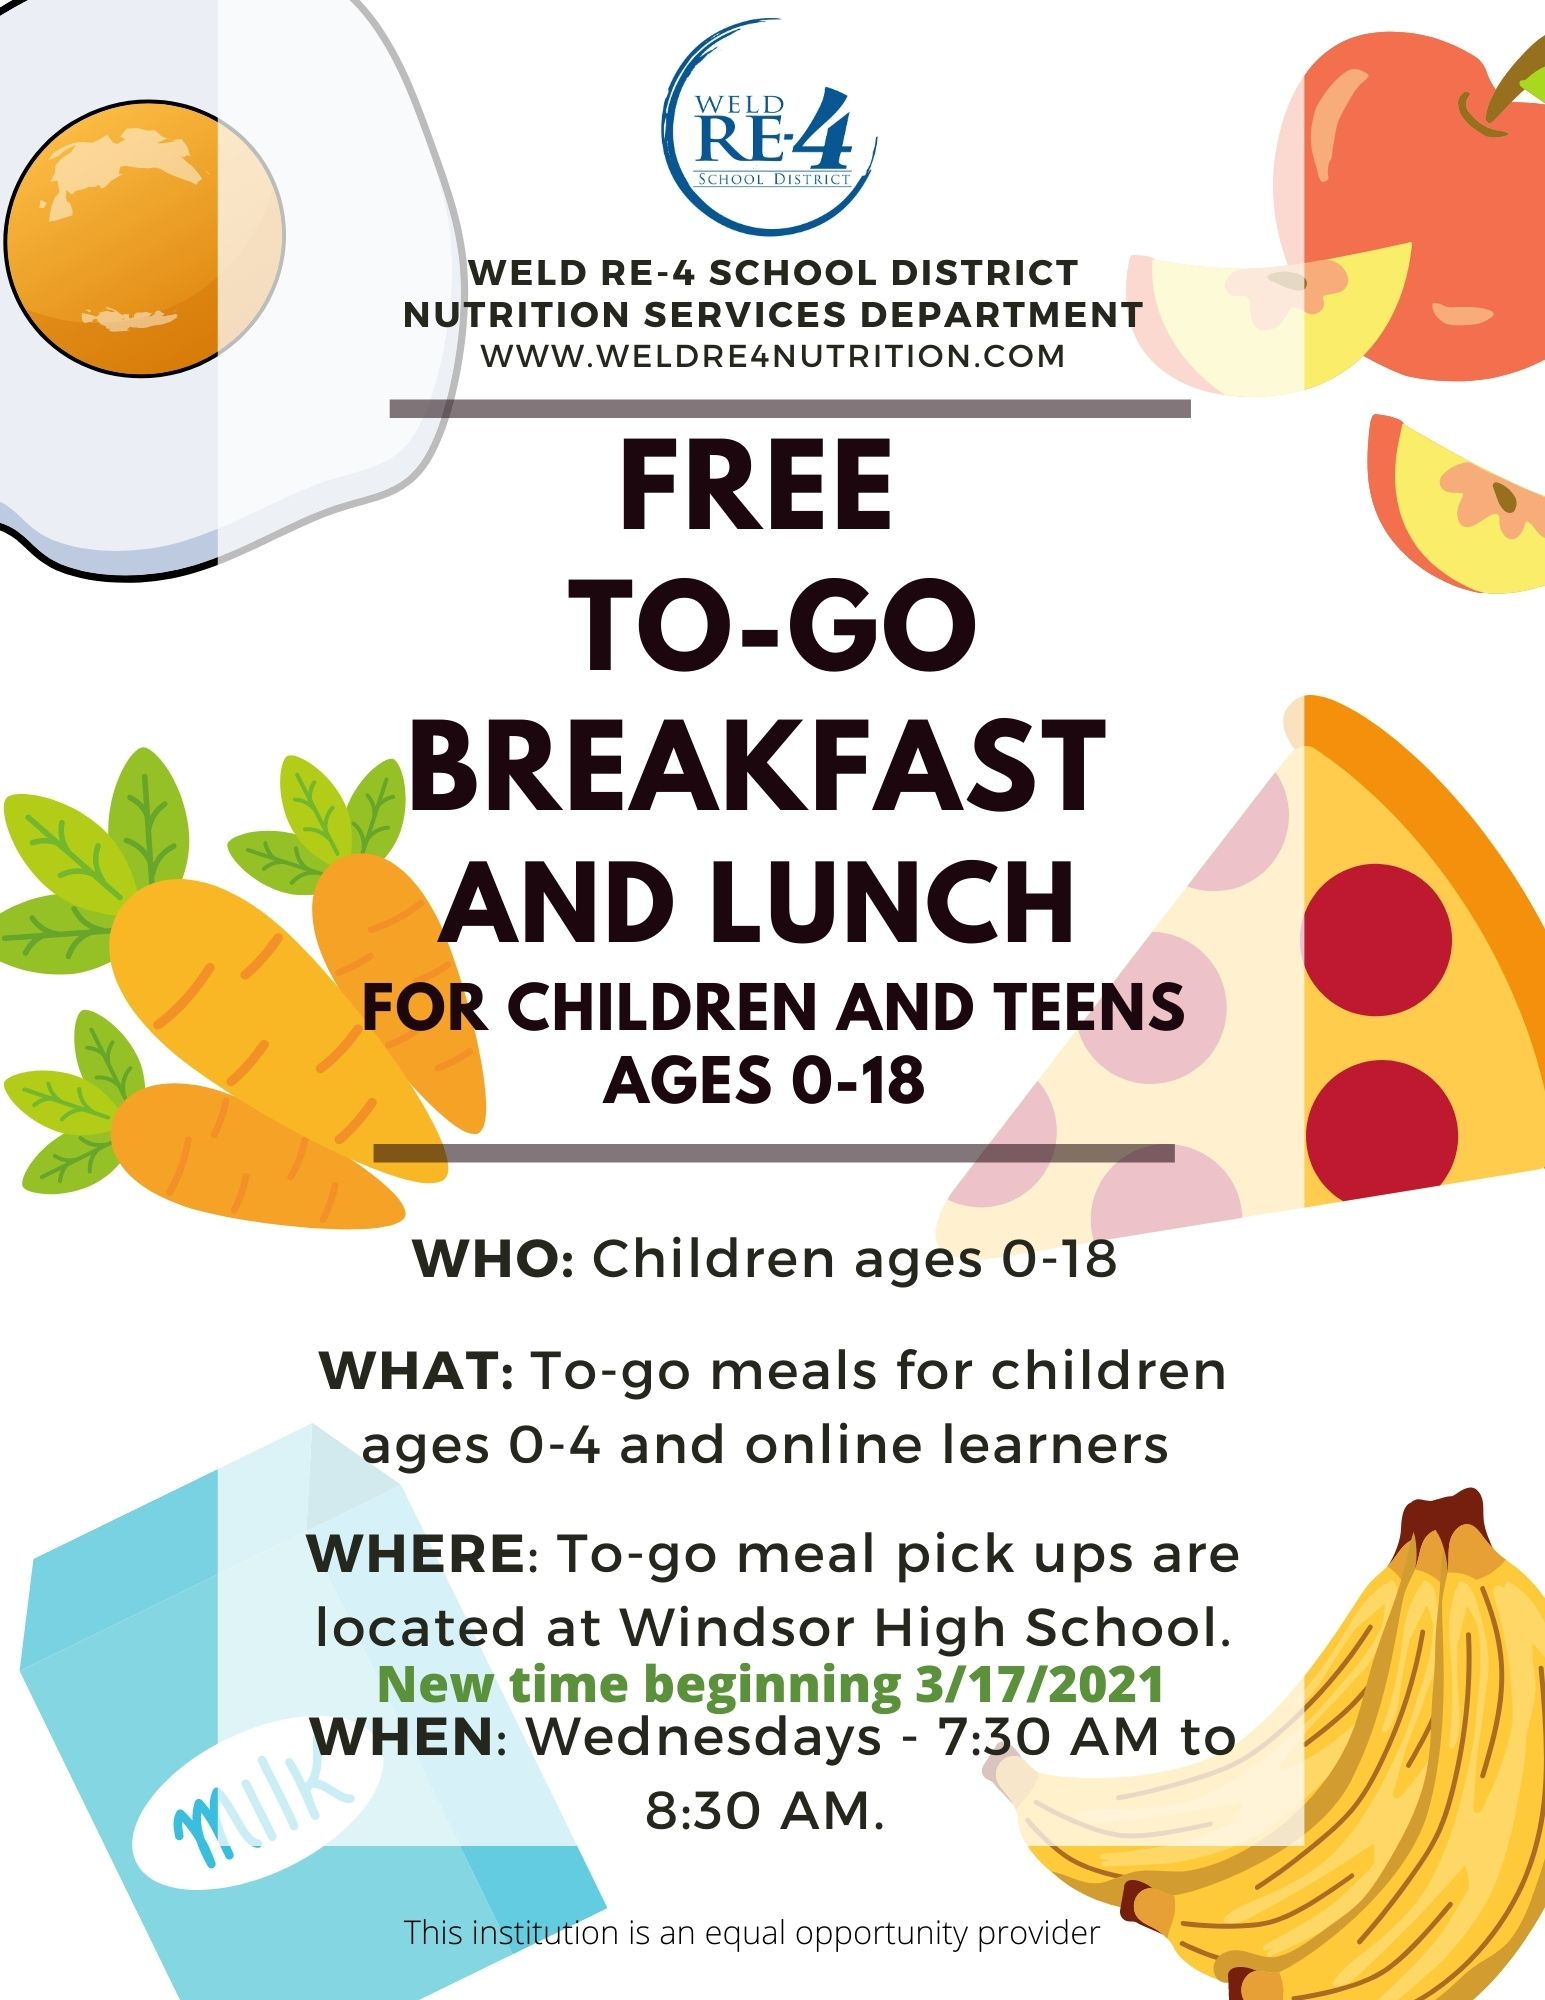 InspiRE-4 Online School _Free Lunch and Breakfast Flyer -New Pick Up Time.jpg